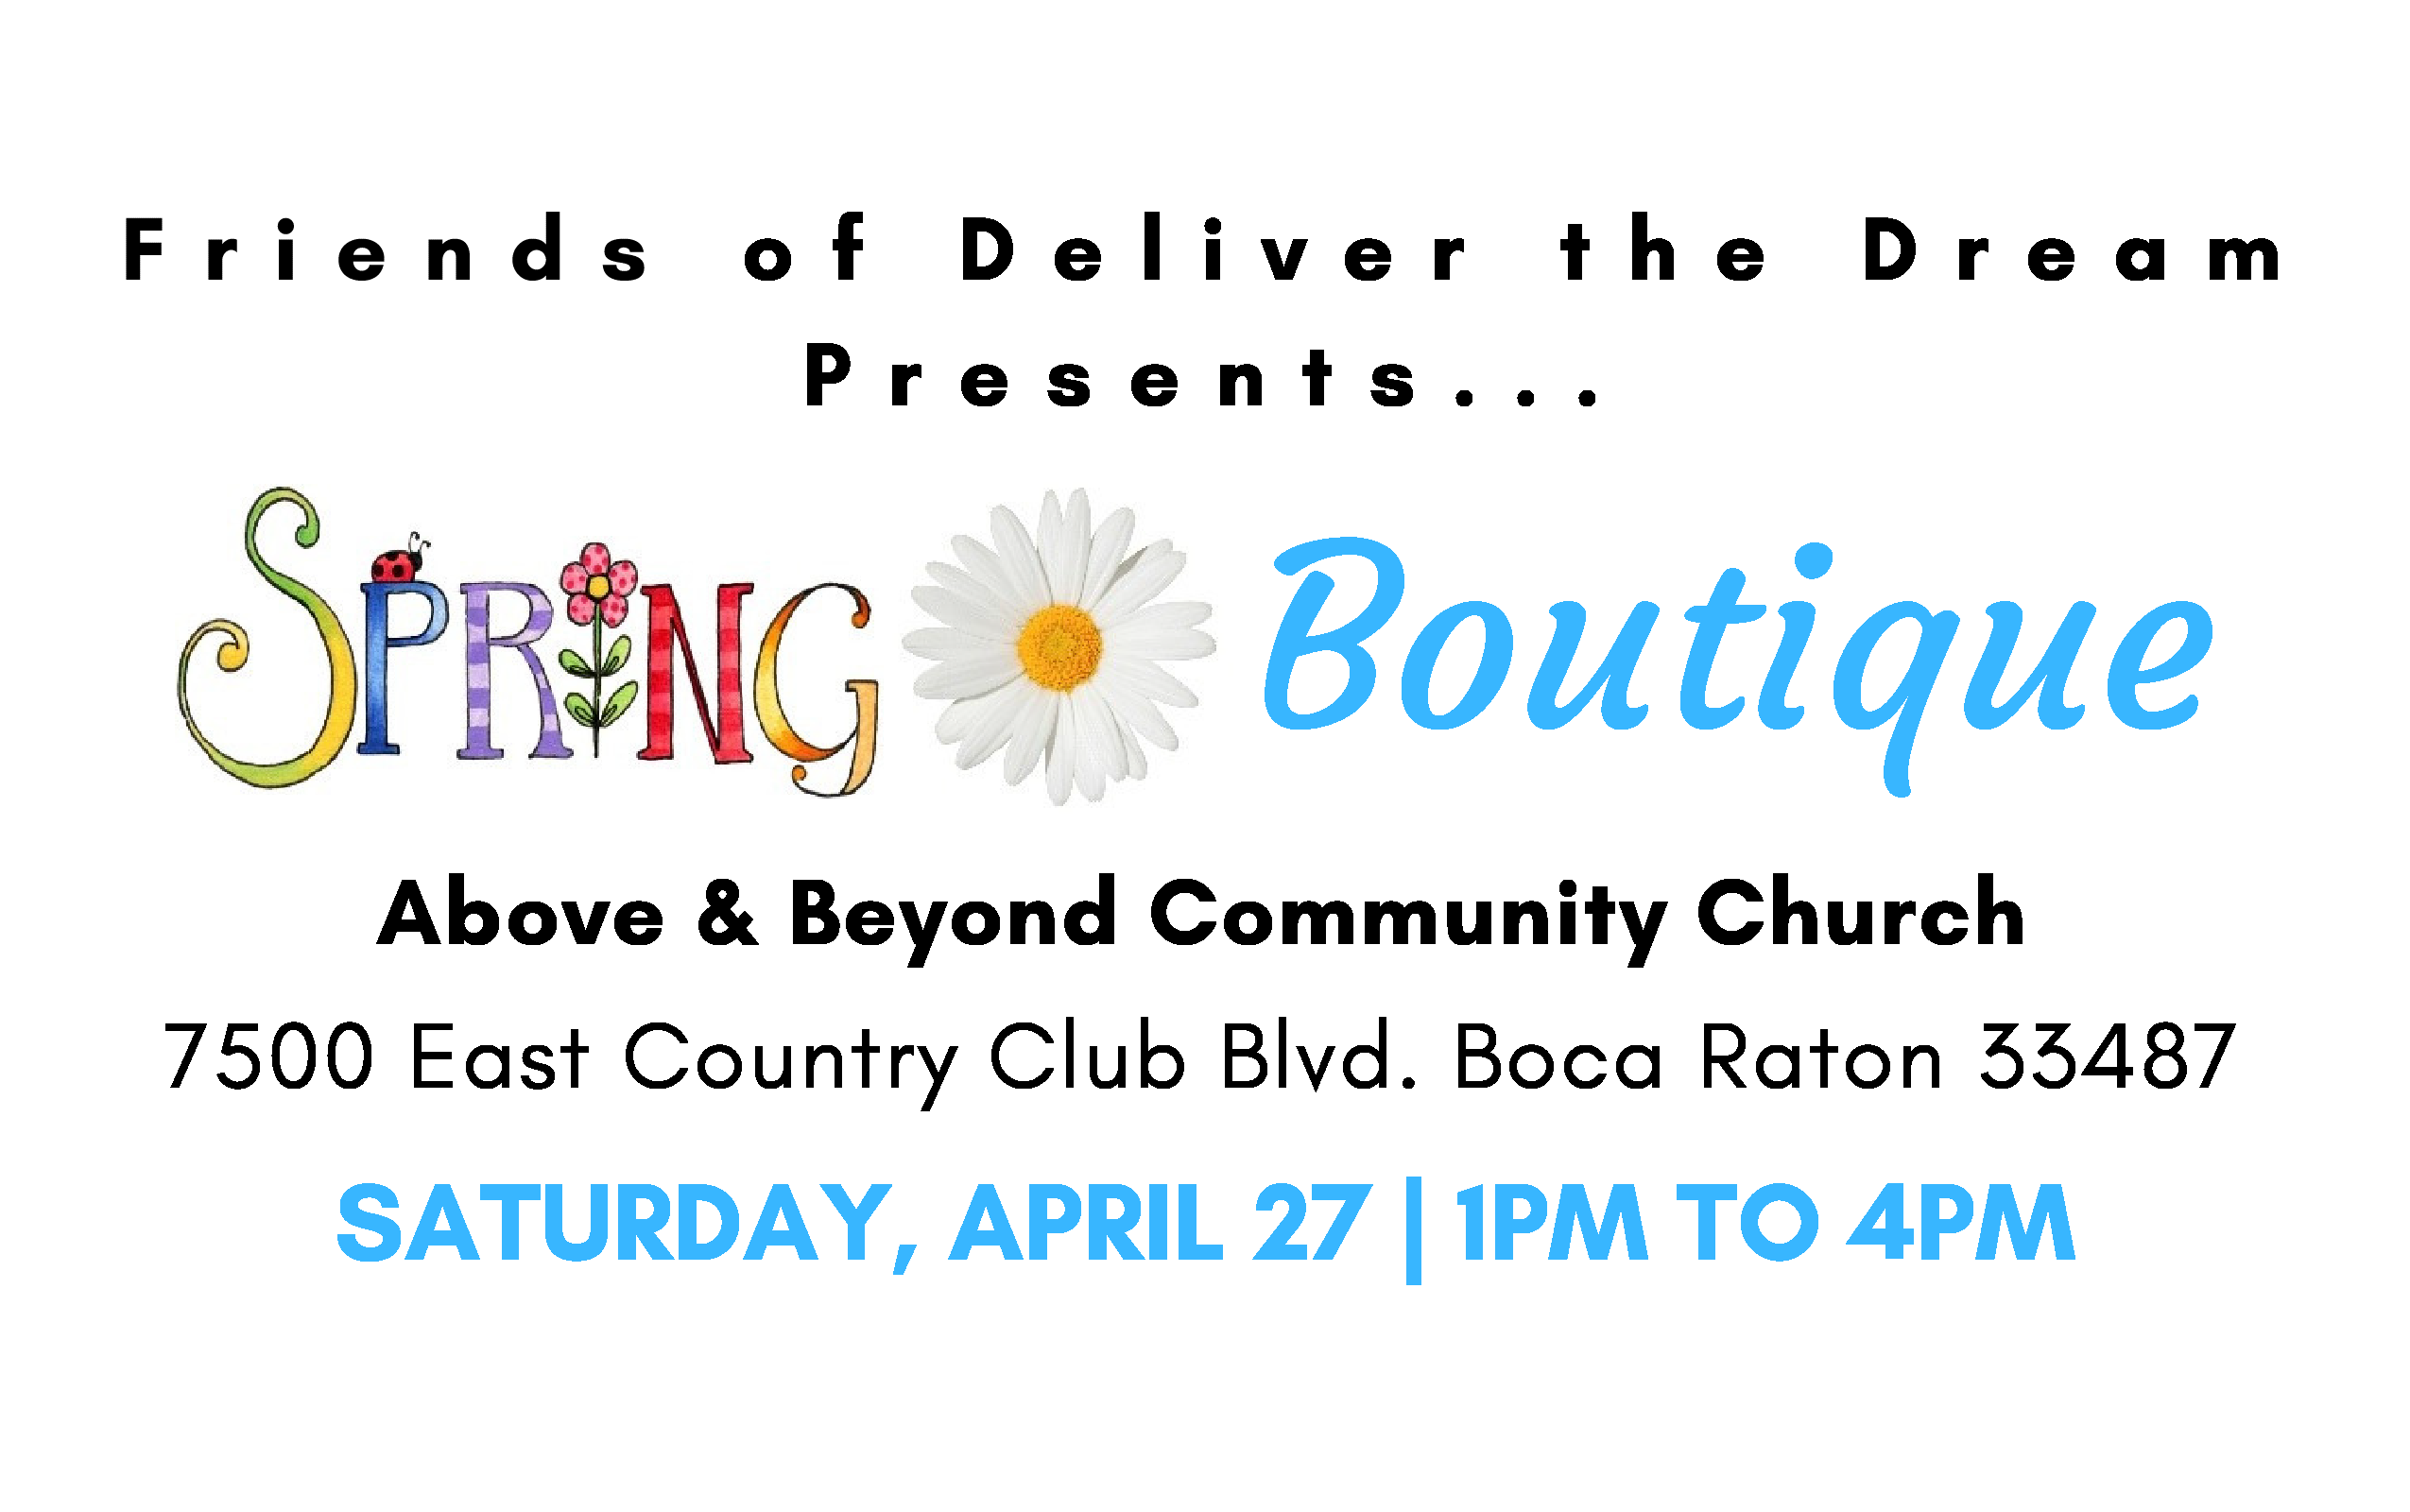 Special Spring Boutique Fundraising Event